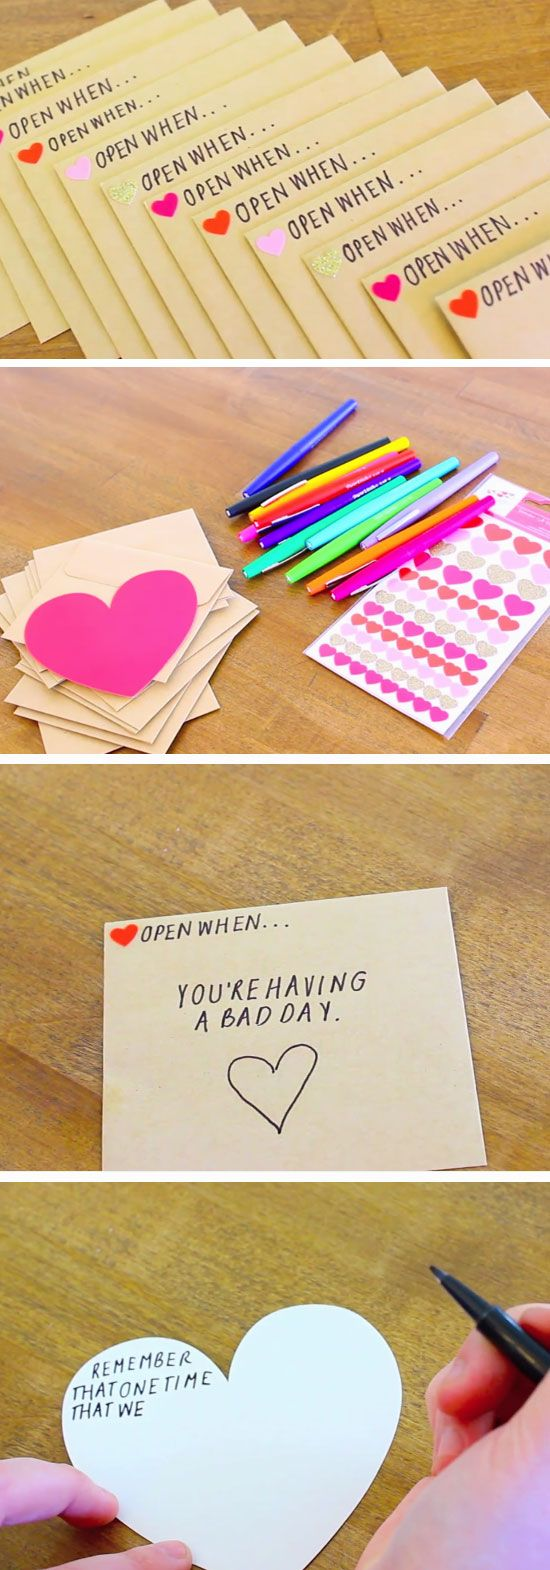 4 Awesome DIY Gifts For Boyfriend With Lots Of Tutorials